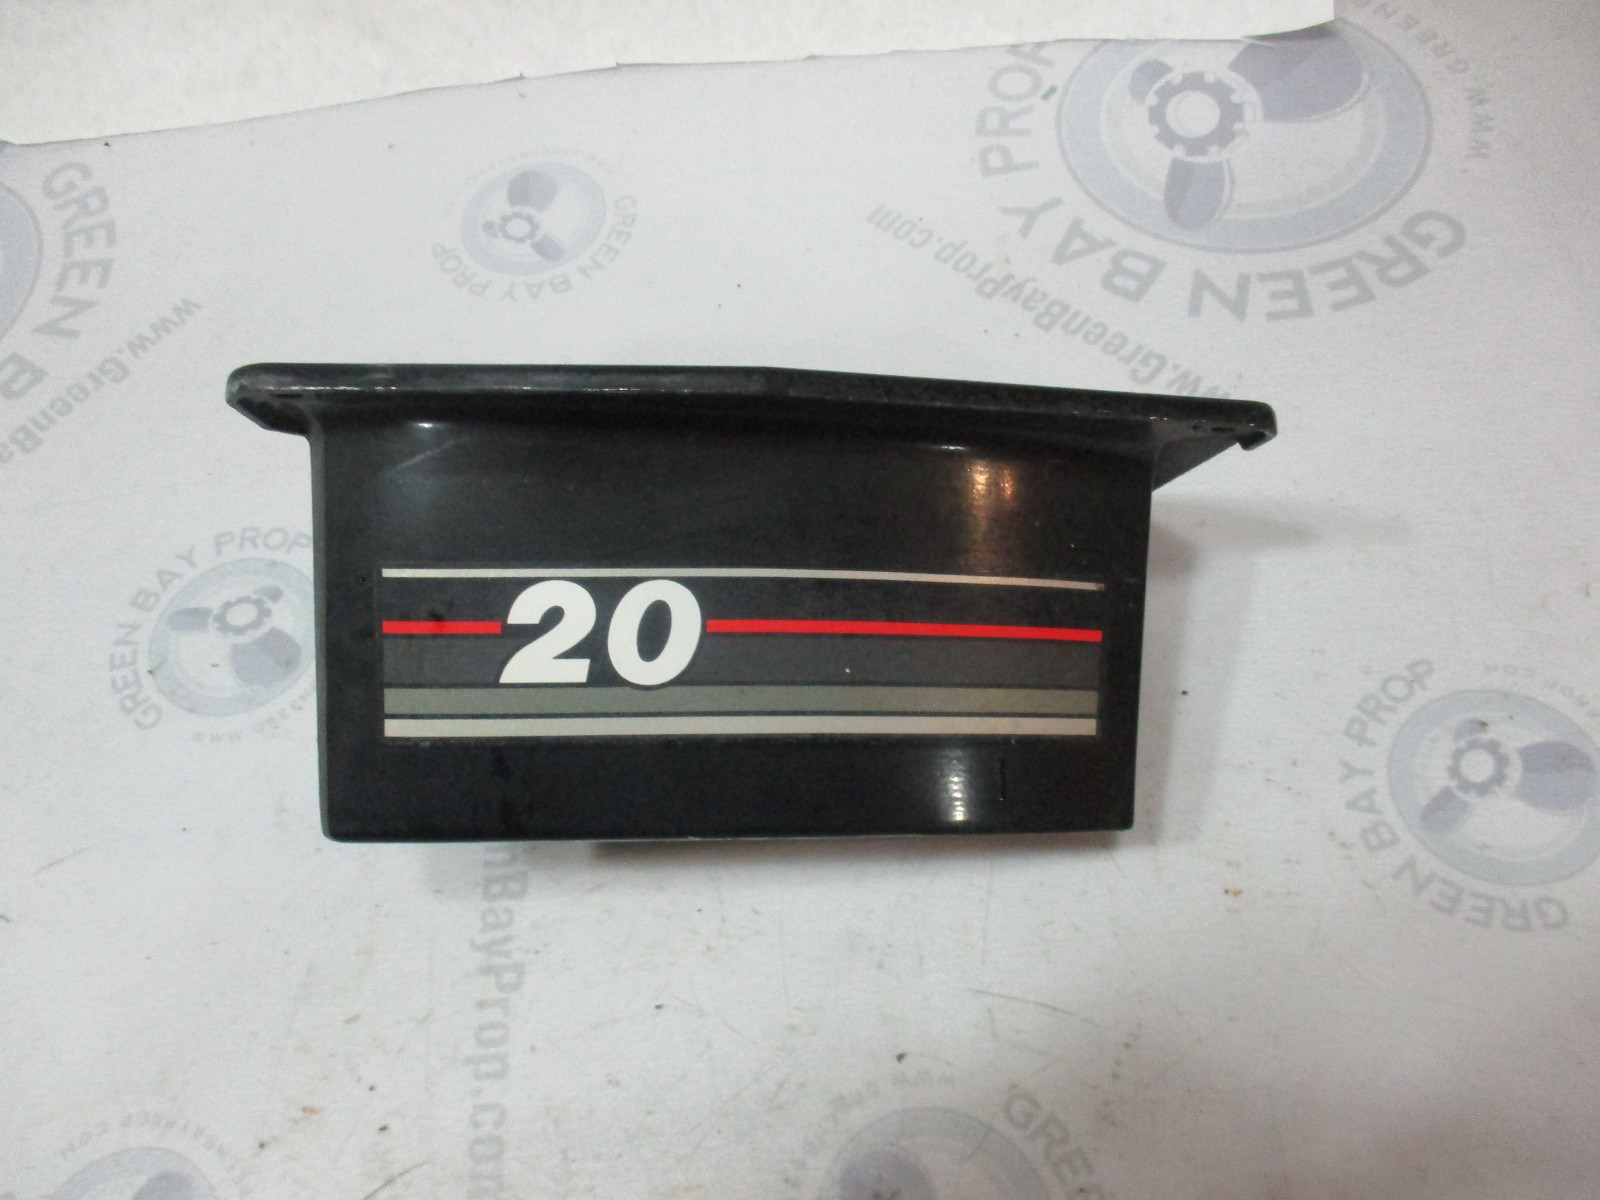 17258T Mercury Mariner Trim Cover (Black) Outboard 18, 20, 25 Hp